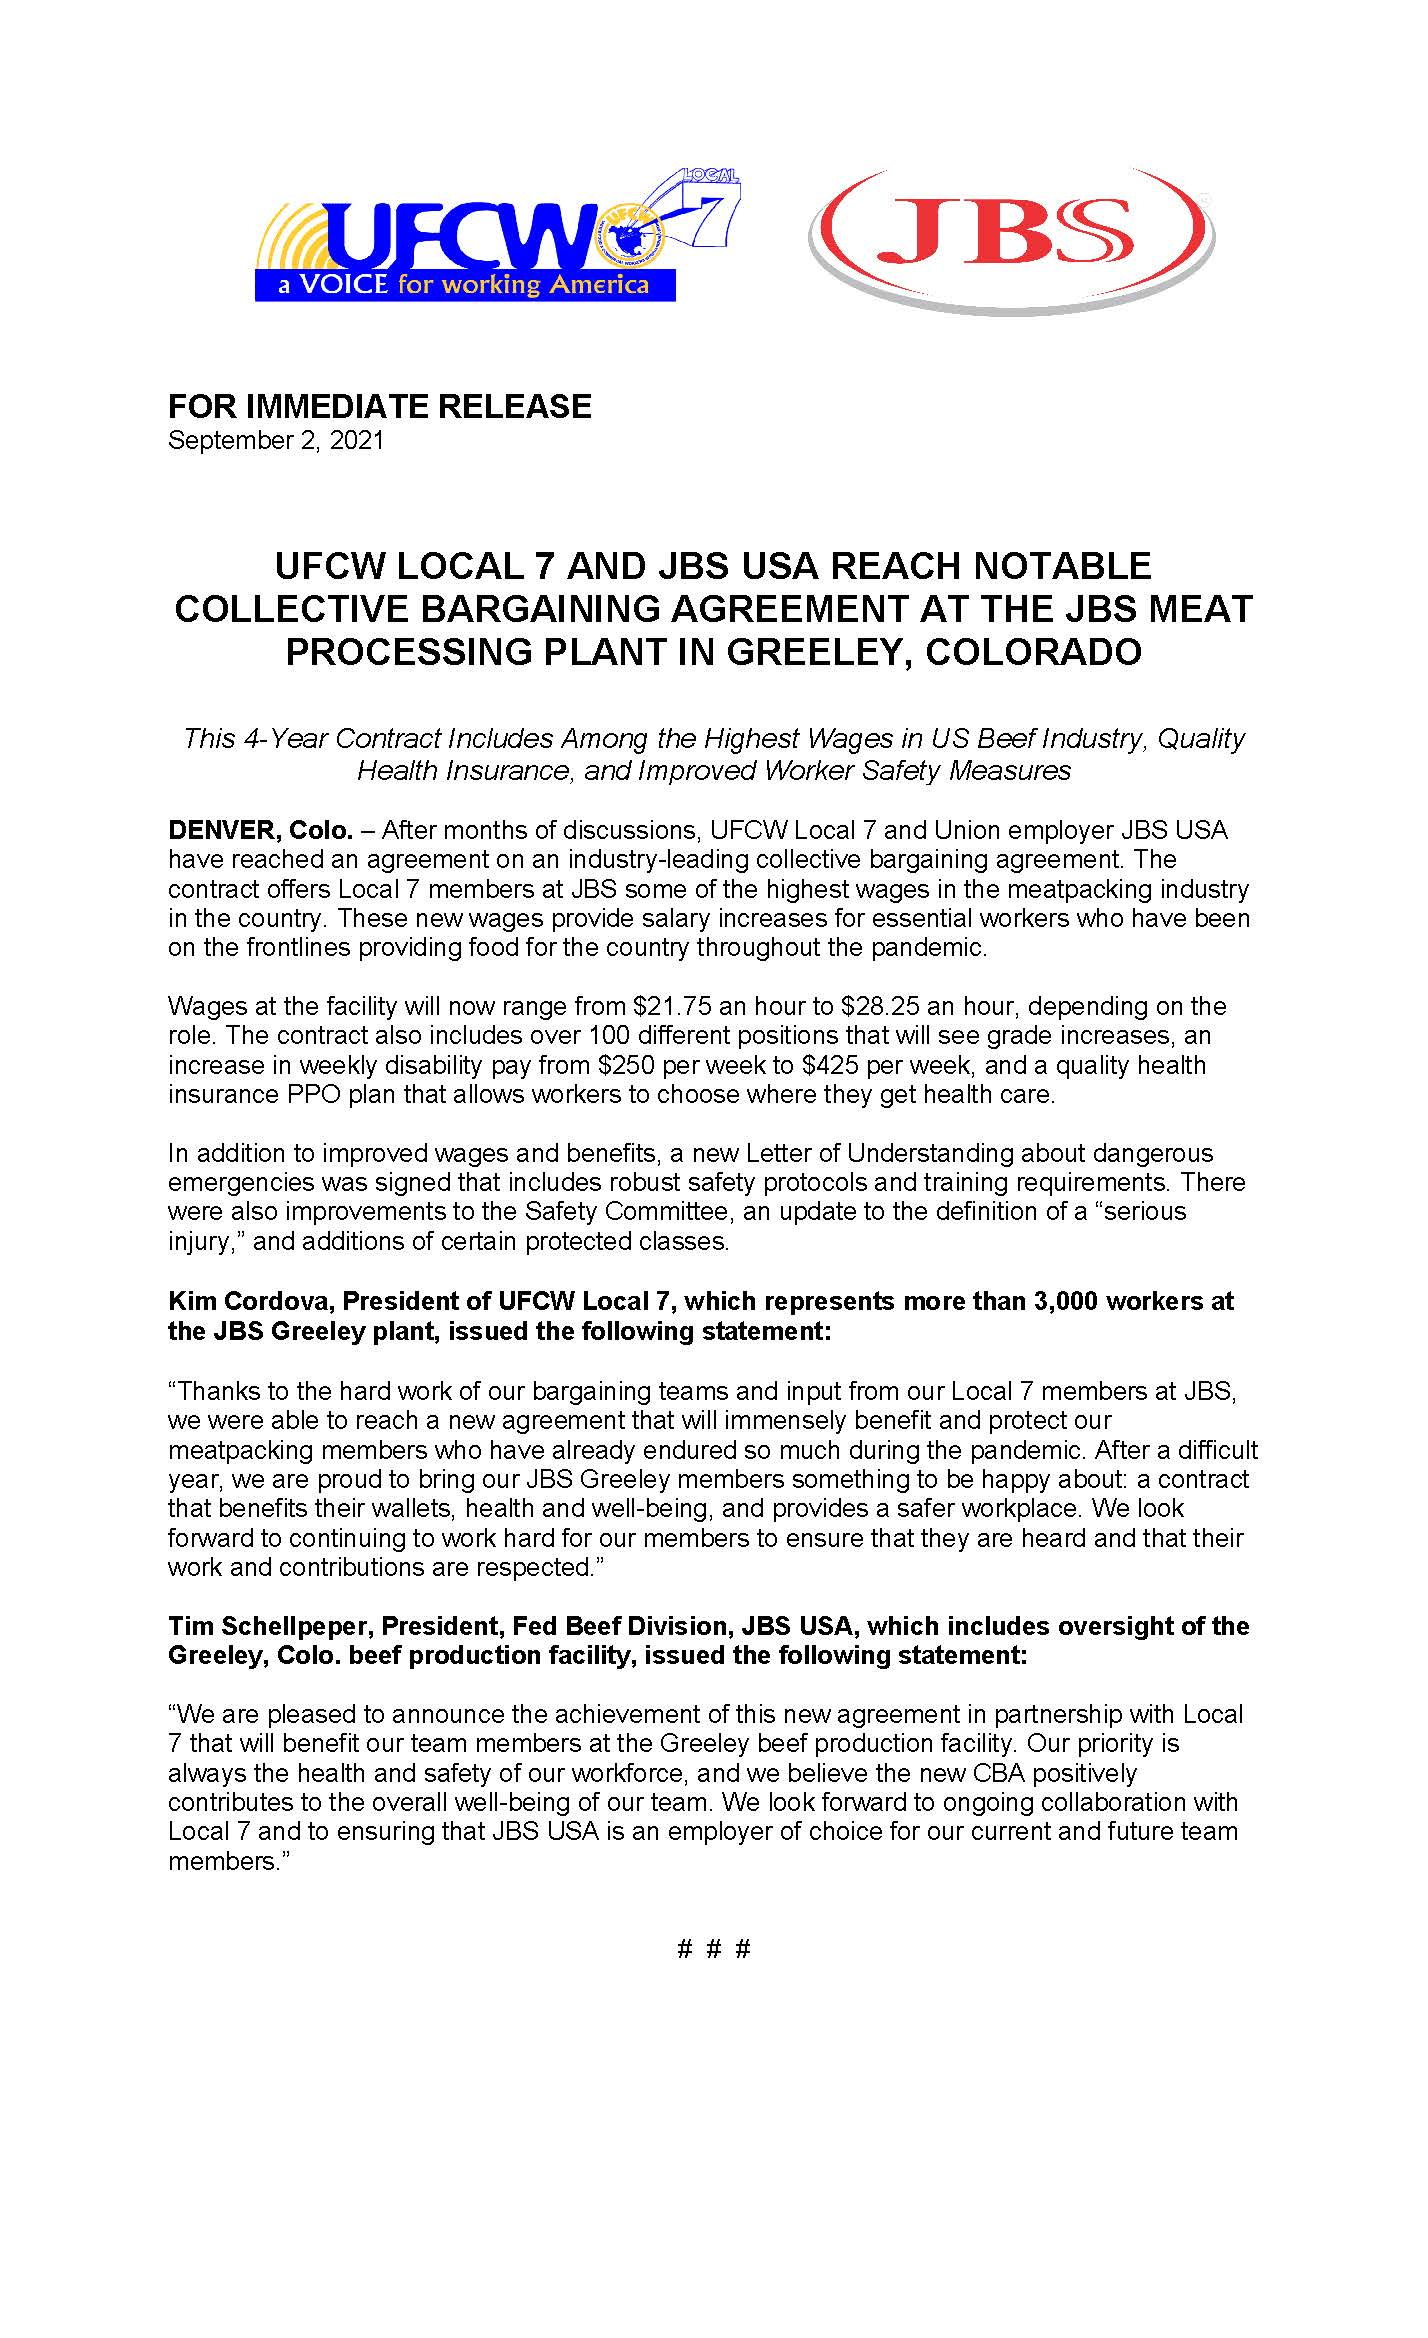 Local 7 and JBS Reach New Notable CBA